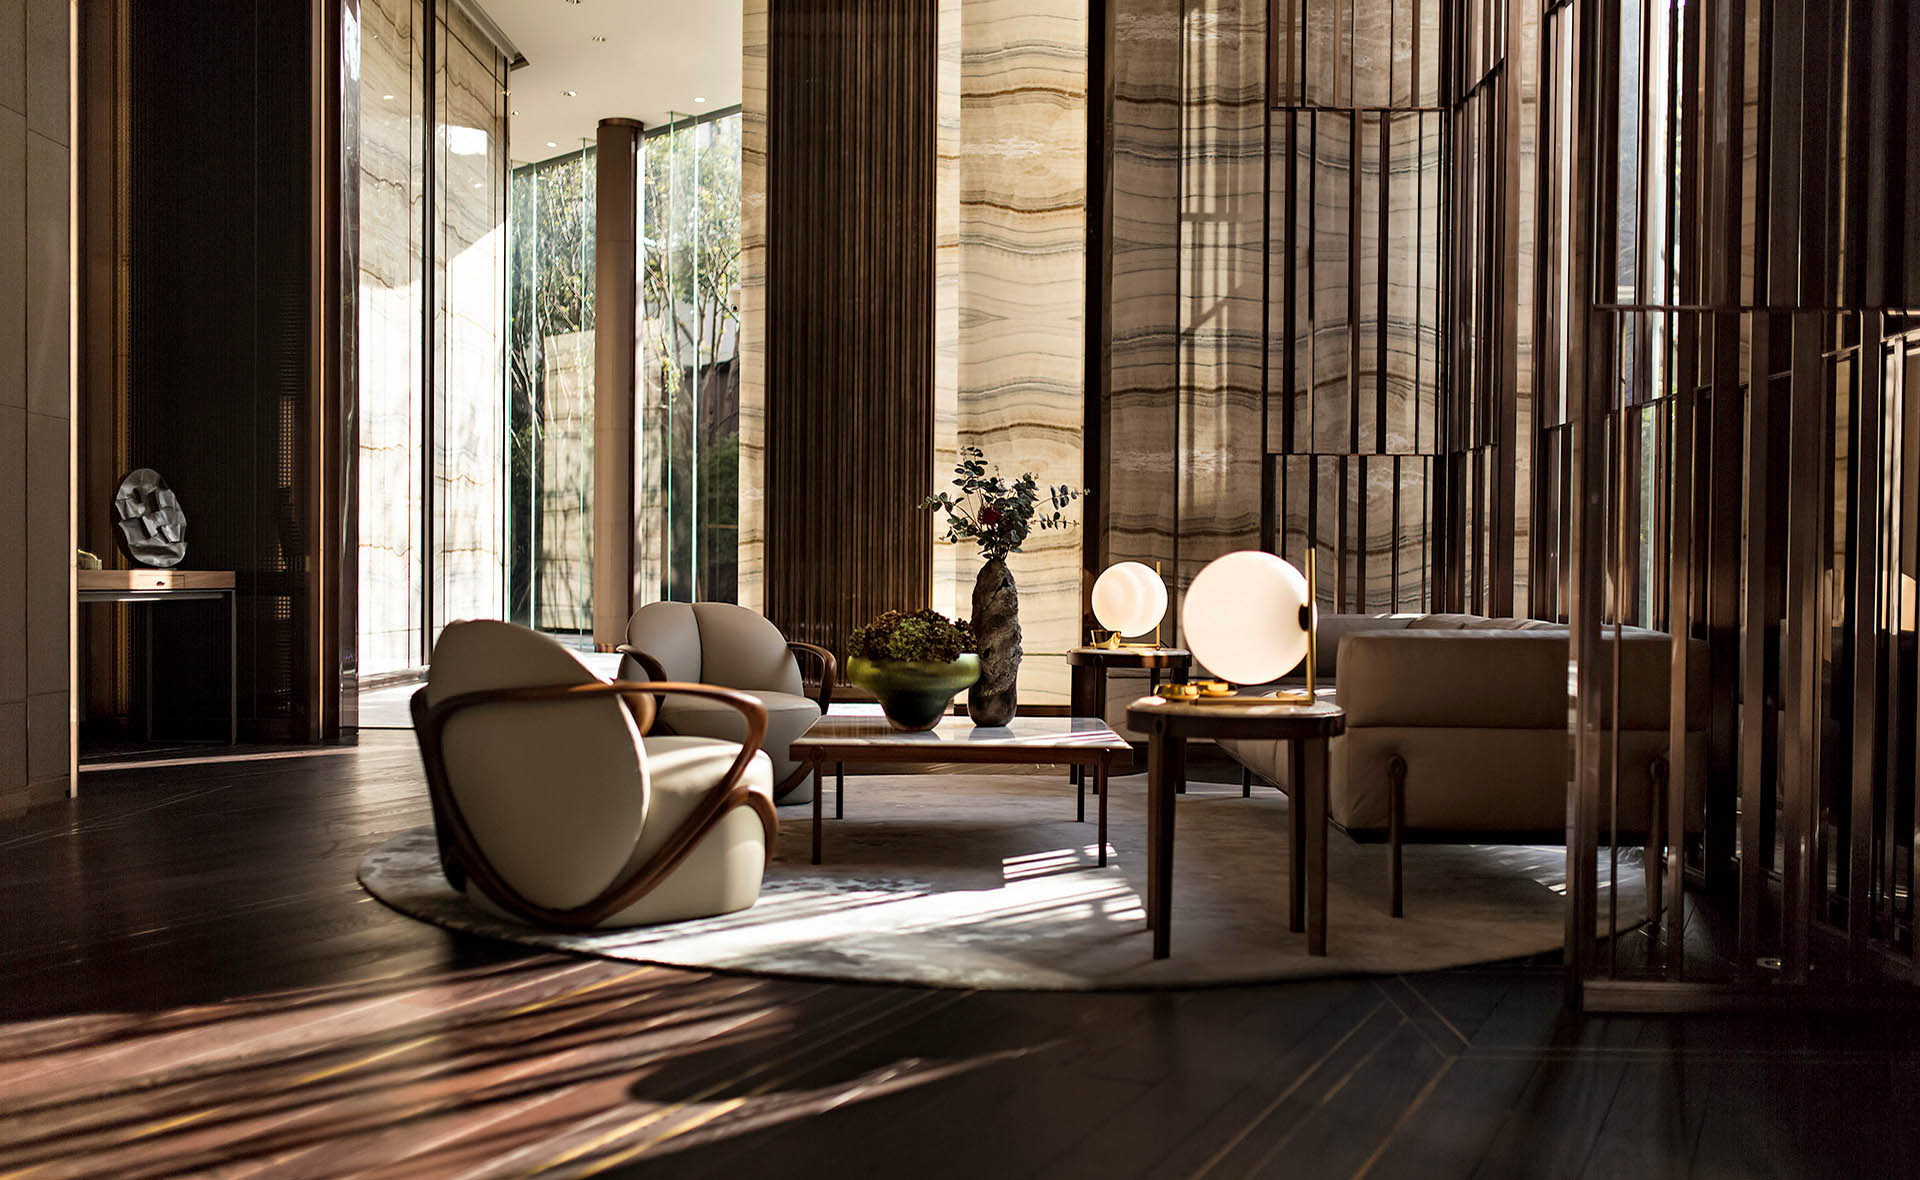 Exquisite Interior Design Projects To Discover In Shanghai interior design project Exquisite Interior Design Projects To Discover In Shanghai Royal Pavillion by Steve Leung Design Group